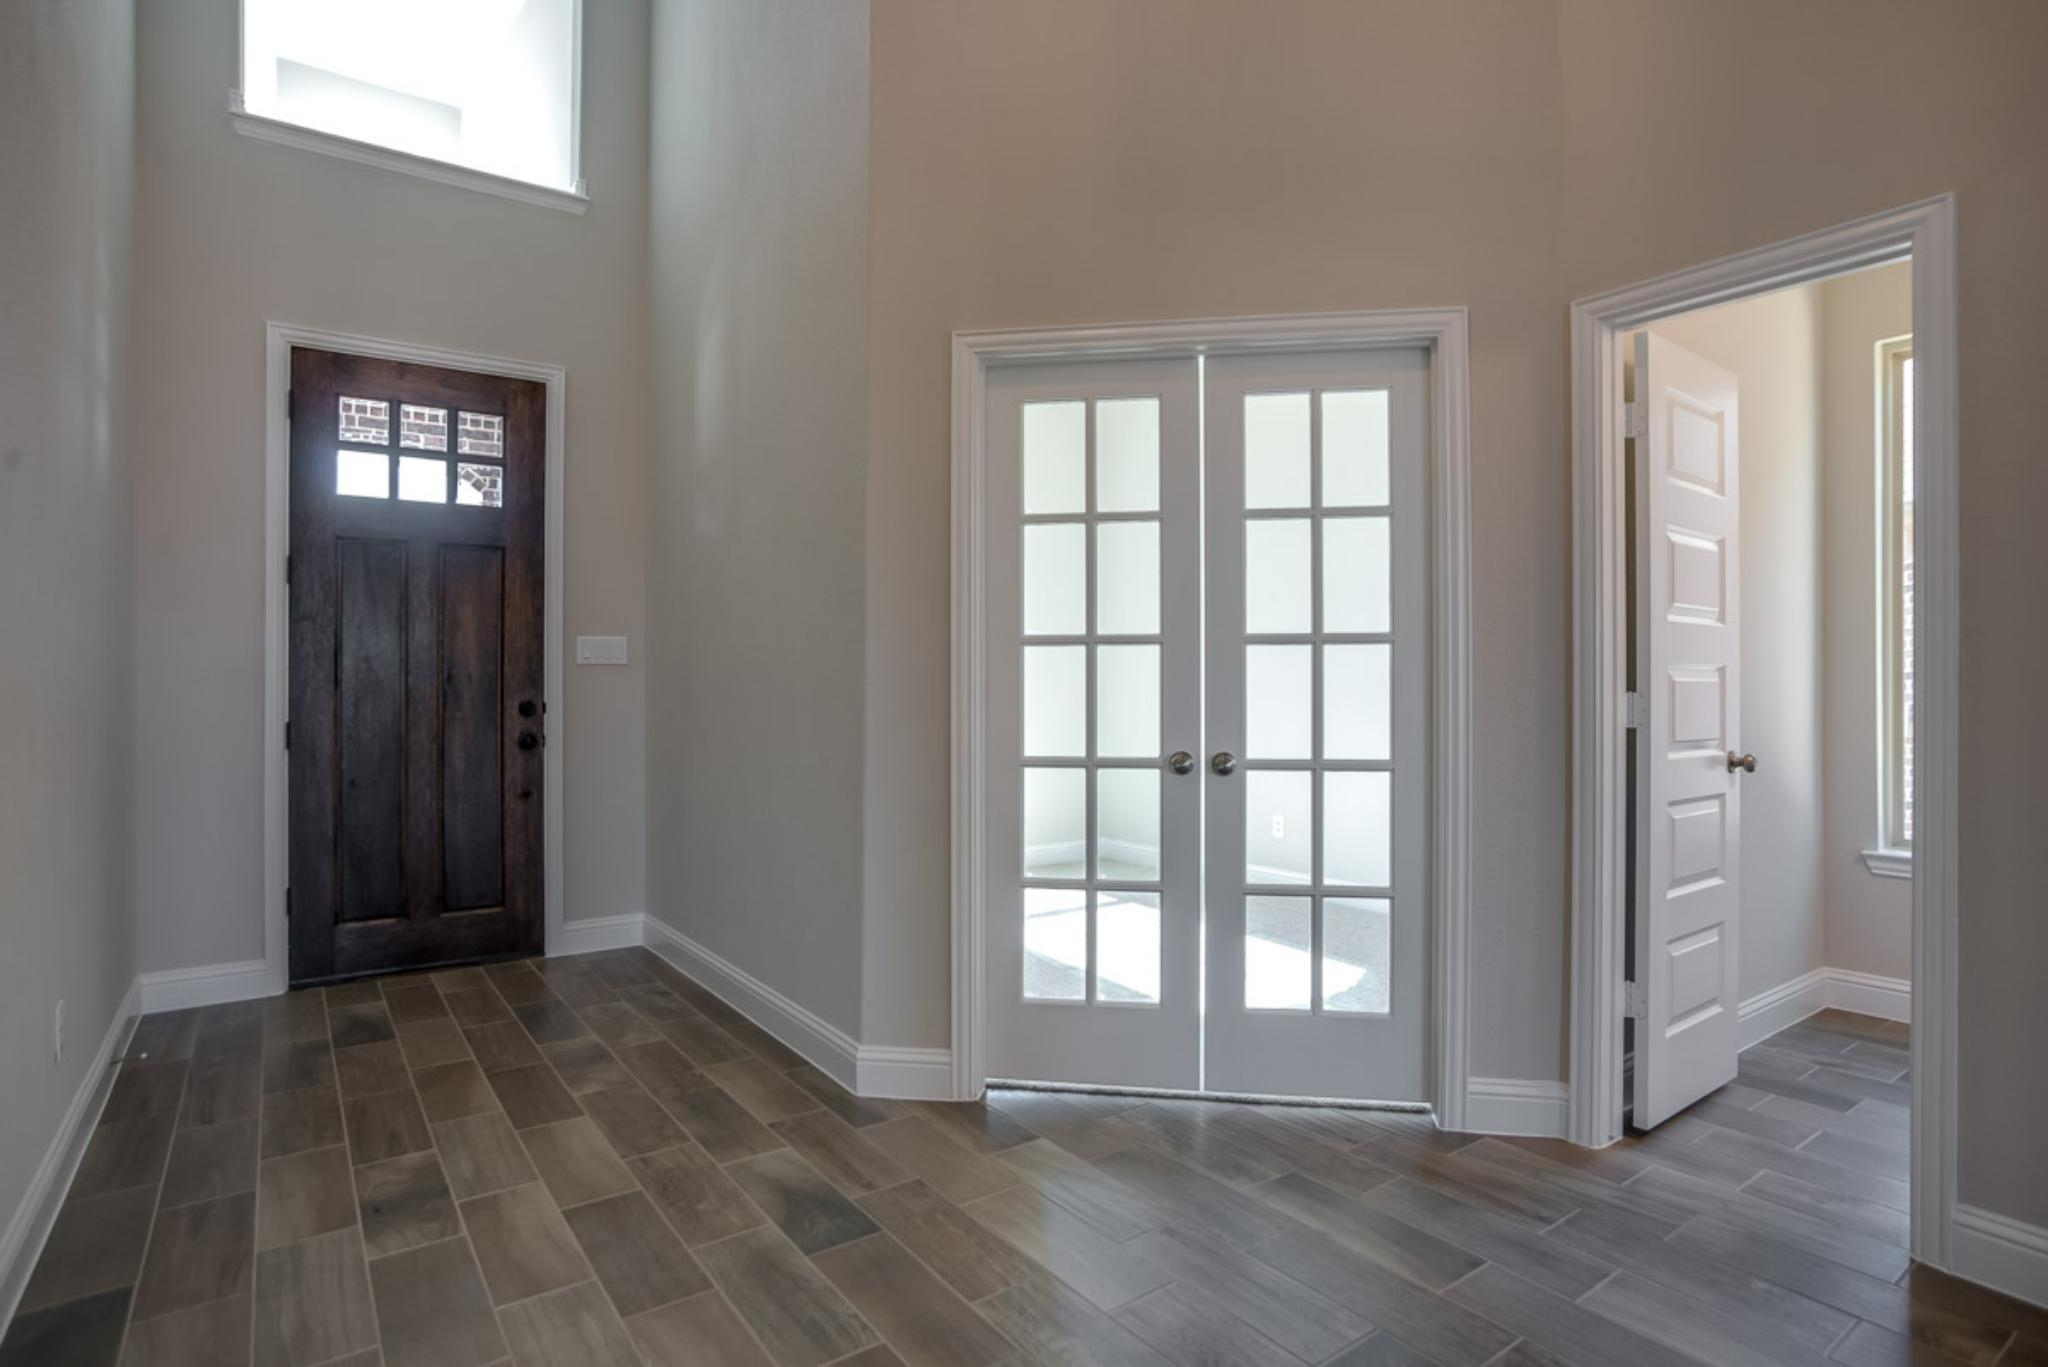 Additional photo for property listing at Plan 1604 16109 Madison Square Way Prosper, Texas 75078 United States